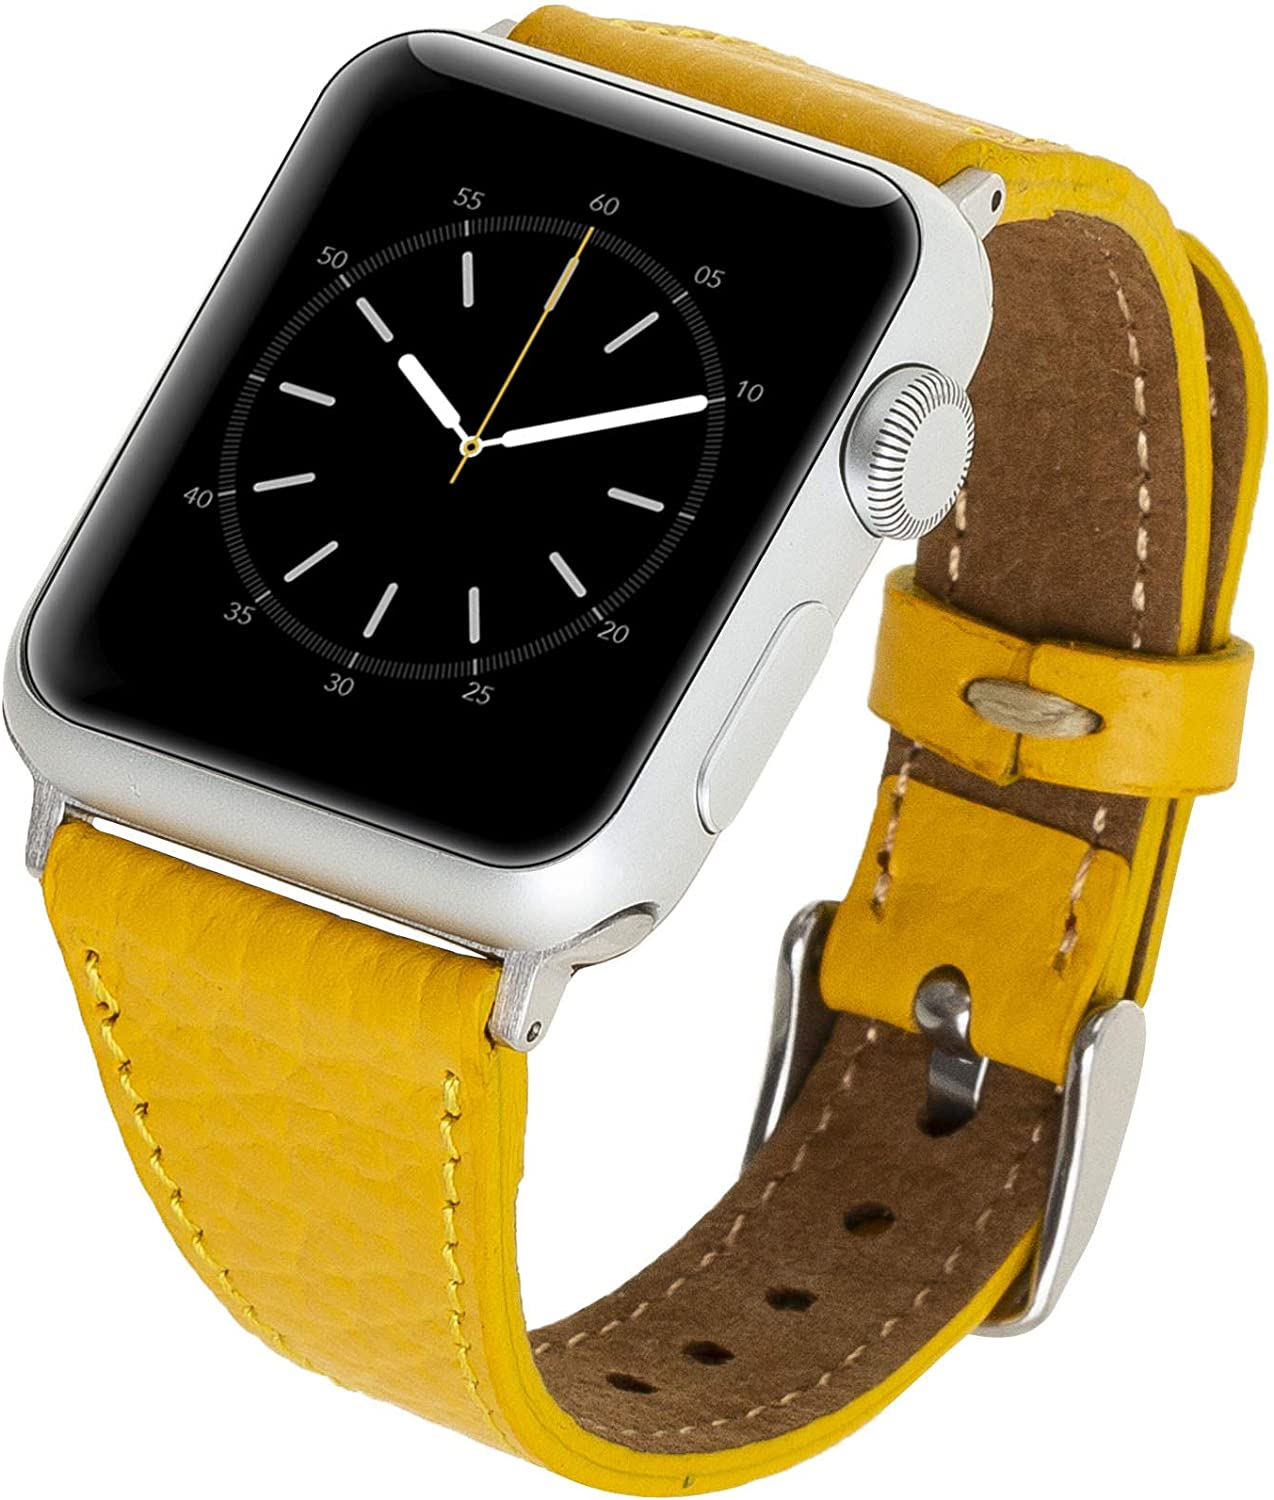 Venito Messina Leather Slim Watch Band Compatible with Apple Watch 38mm 40mm - Strap Designed for iwatch Series 1 2 3 4 5 6 (Yellow w/Silver Connector&Clasp)